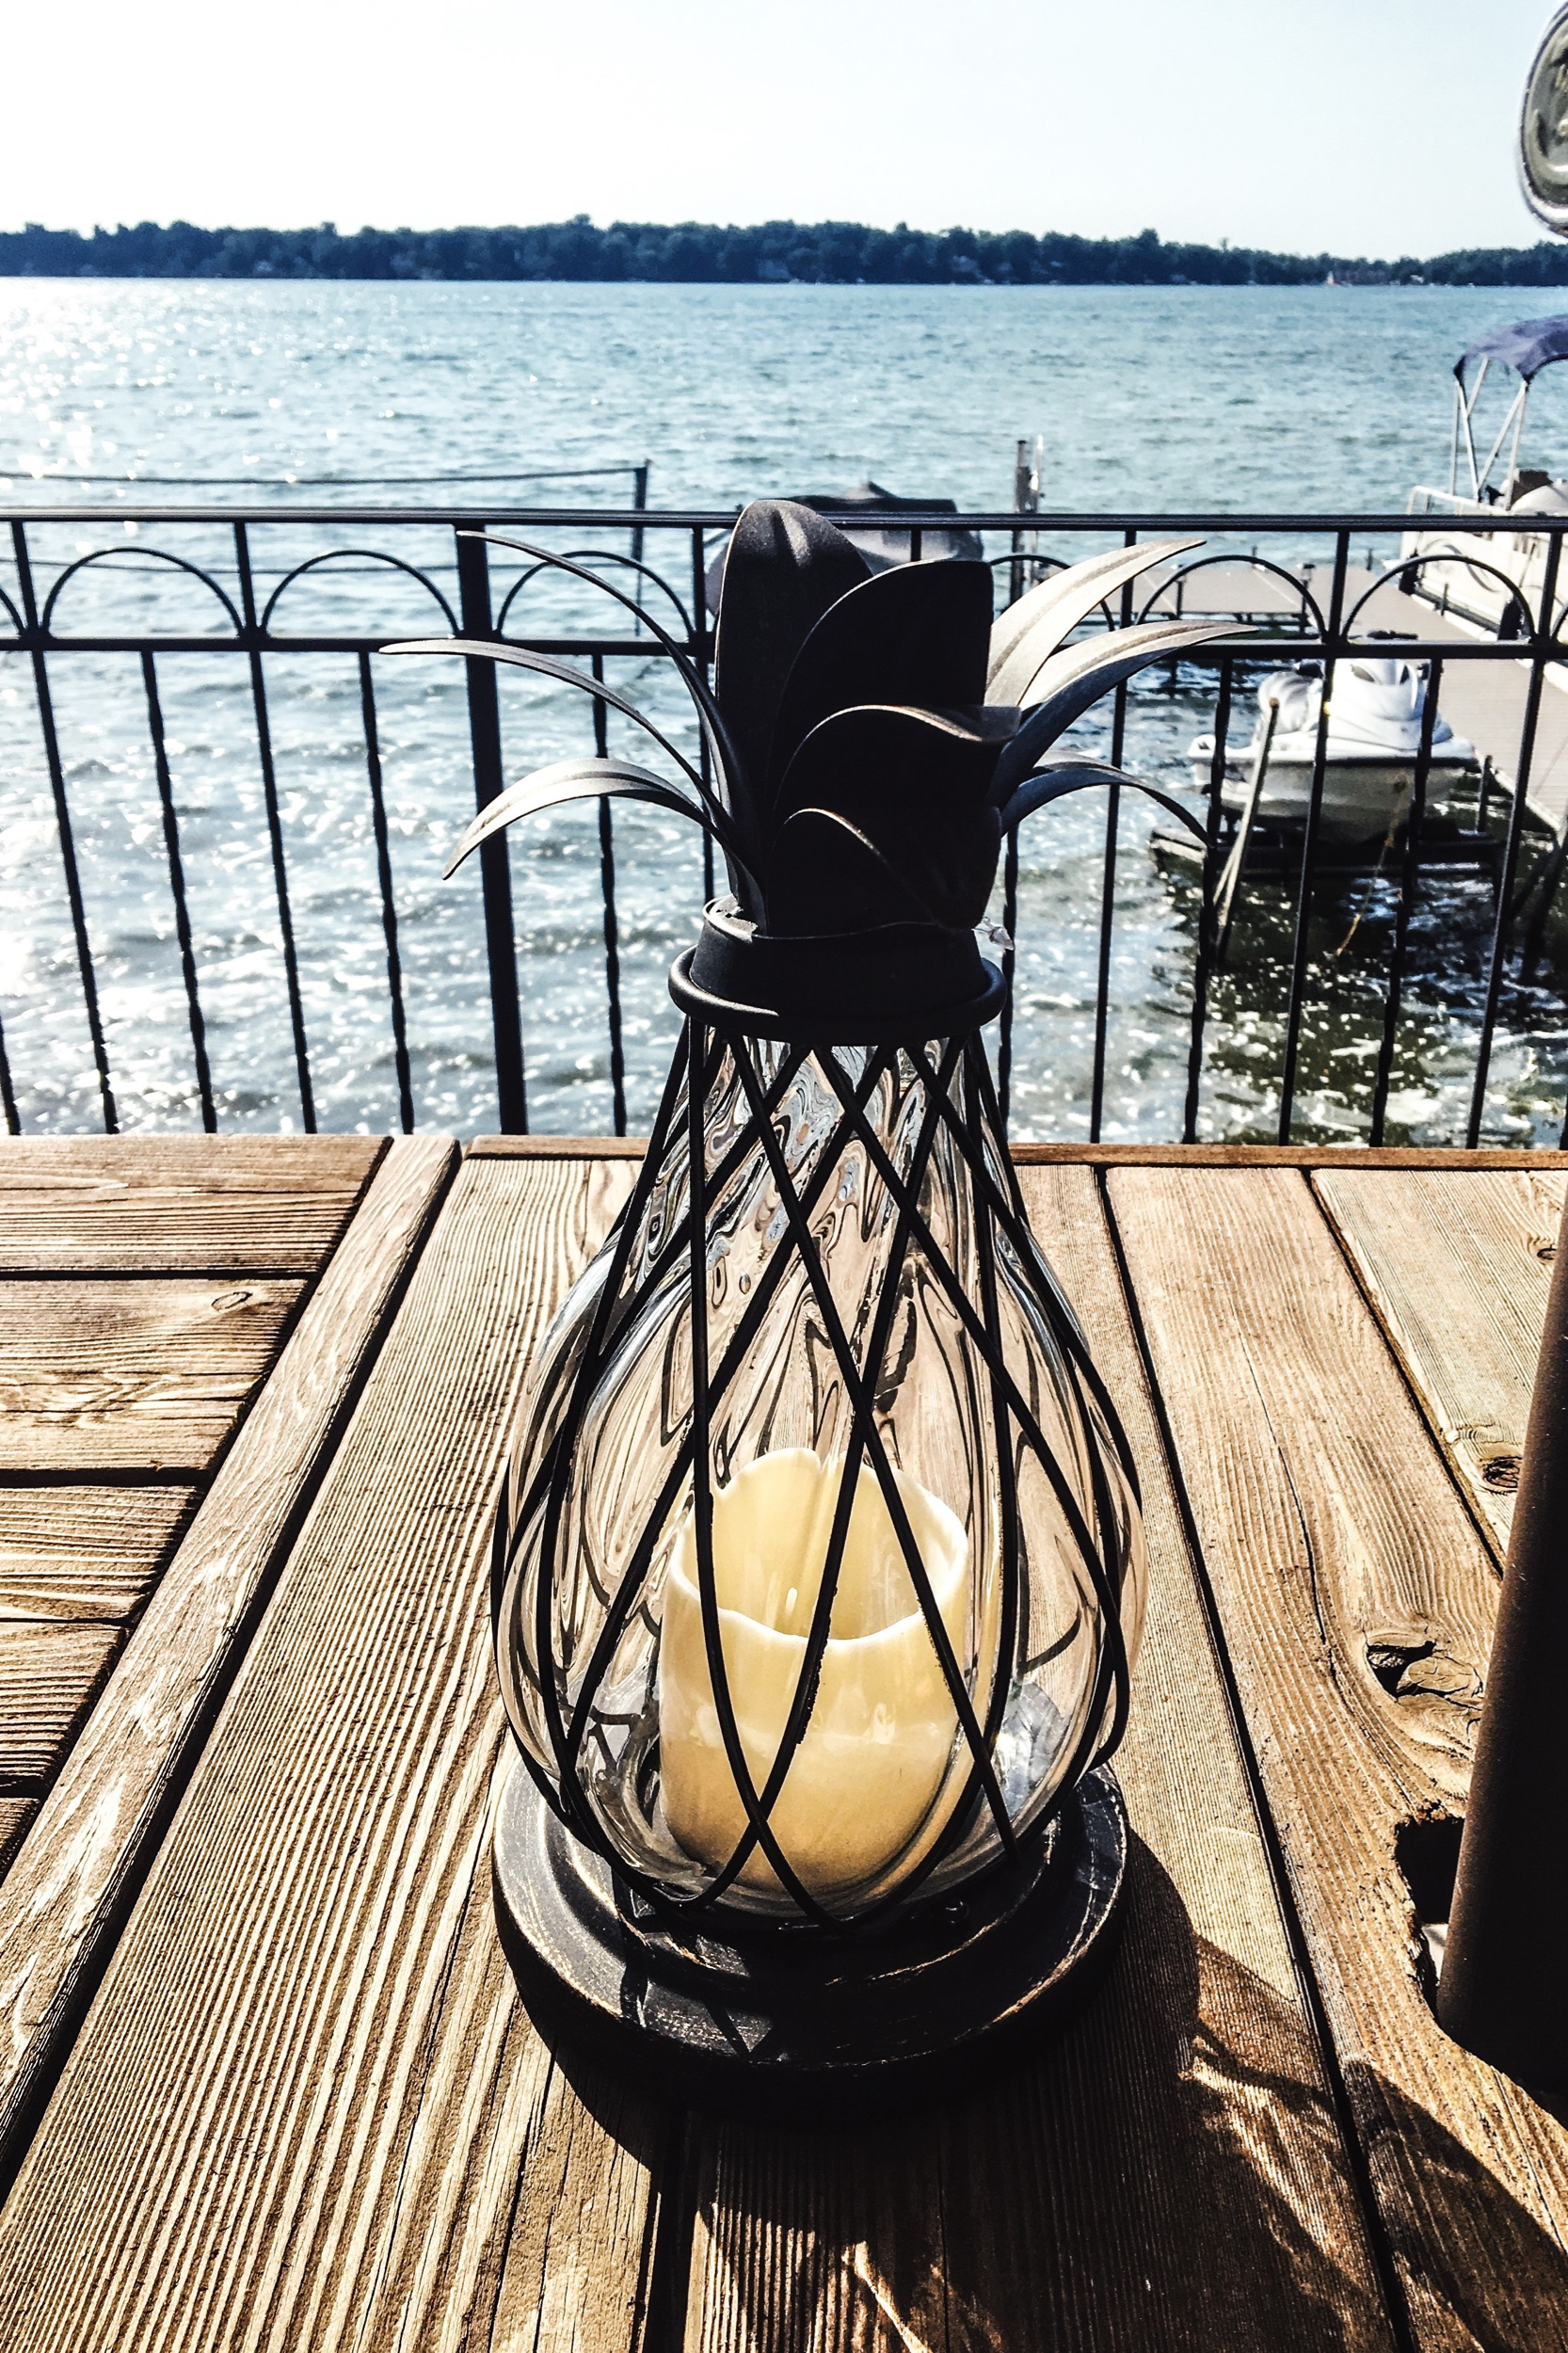 Decorative LED Outdoor Lantern Ideas. Lake house lighting ideas. Deck lighting. Out door LED lights. #lakehouse #outdoor #light #ideas